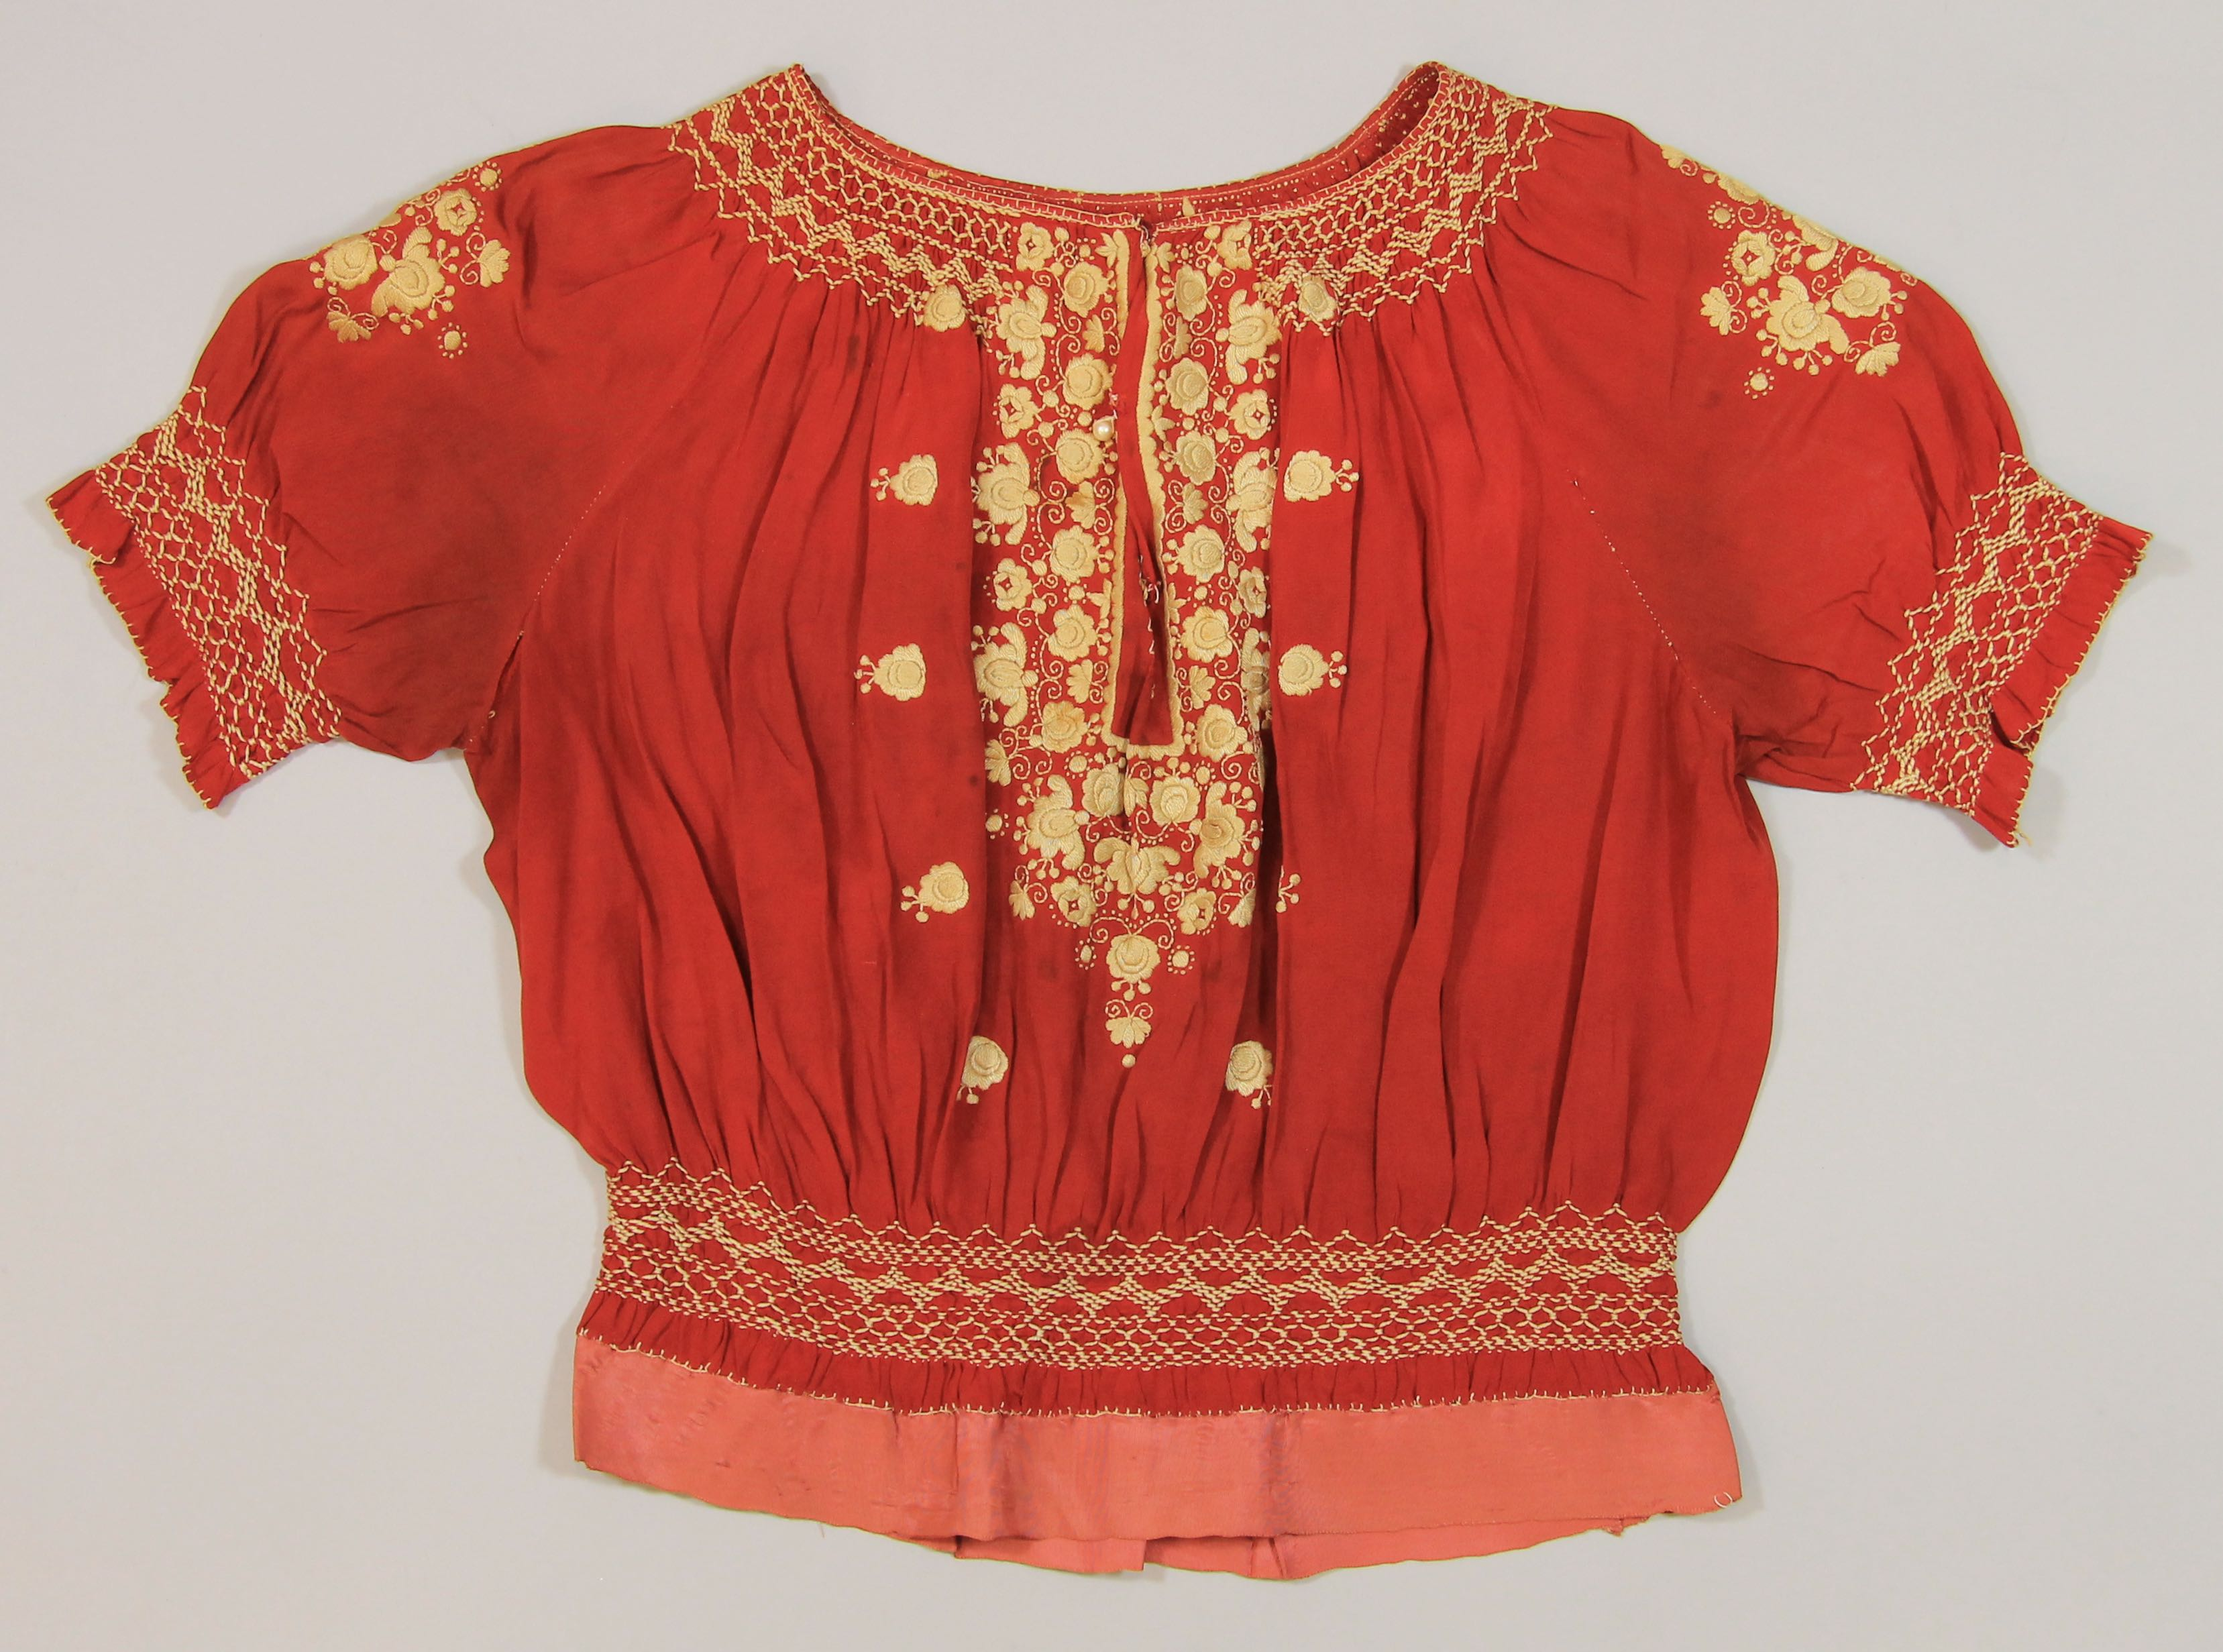 Woman's red blouse